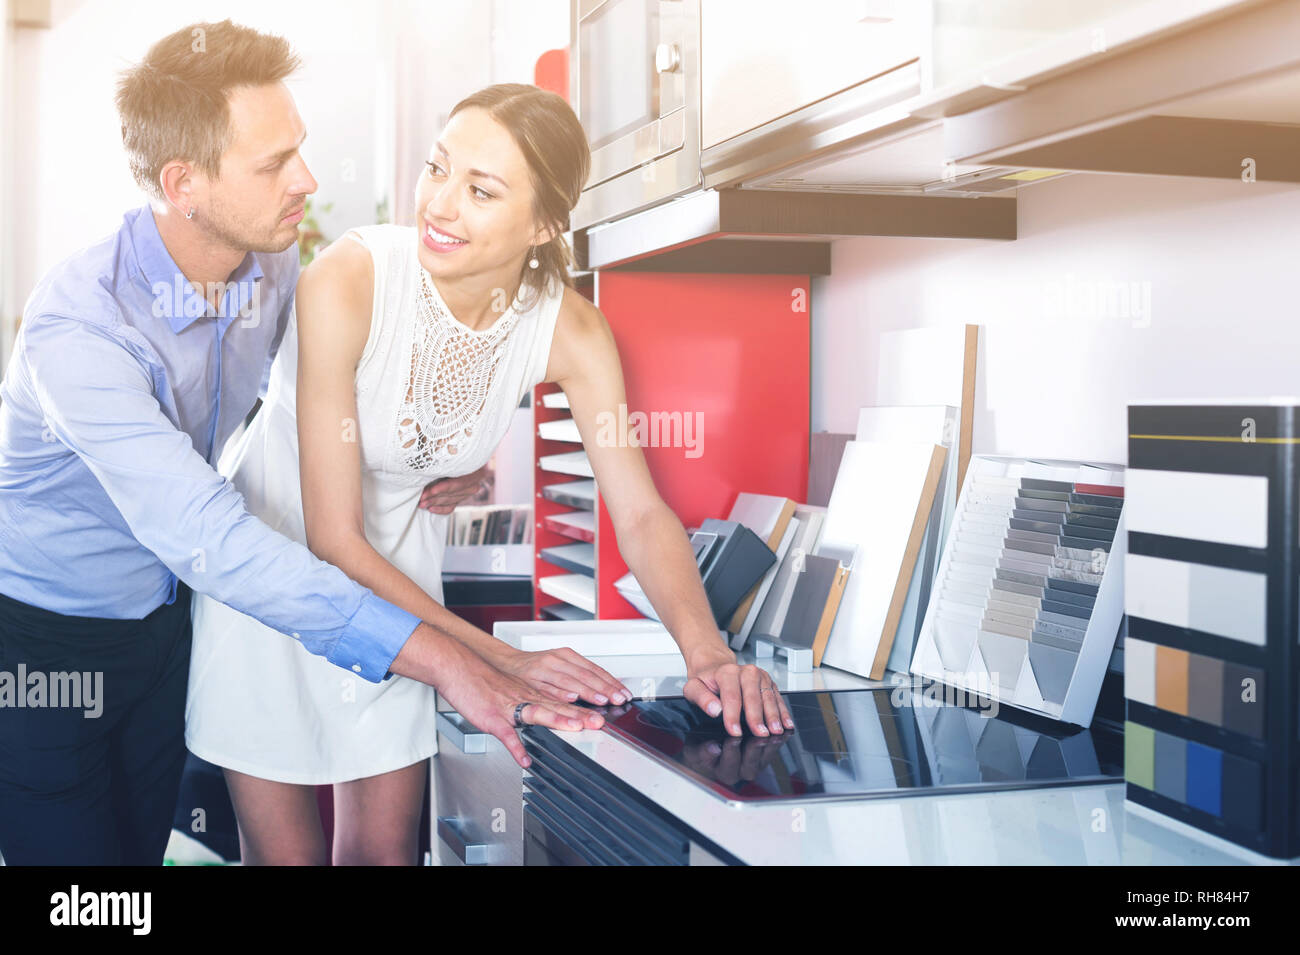 family couple looking at modern kitchen tabletop in furniture